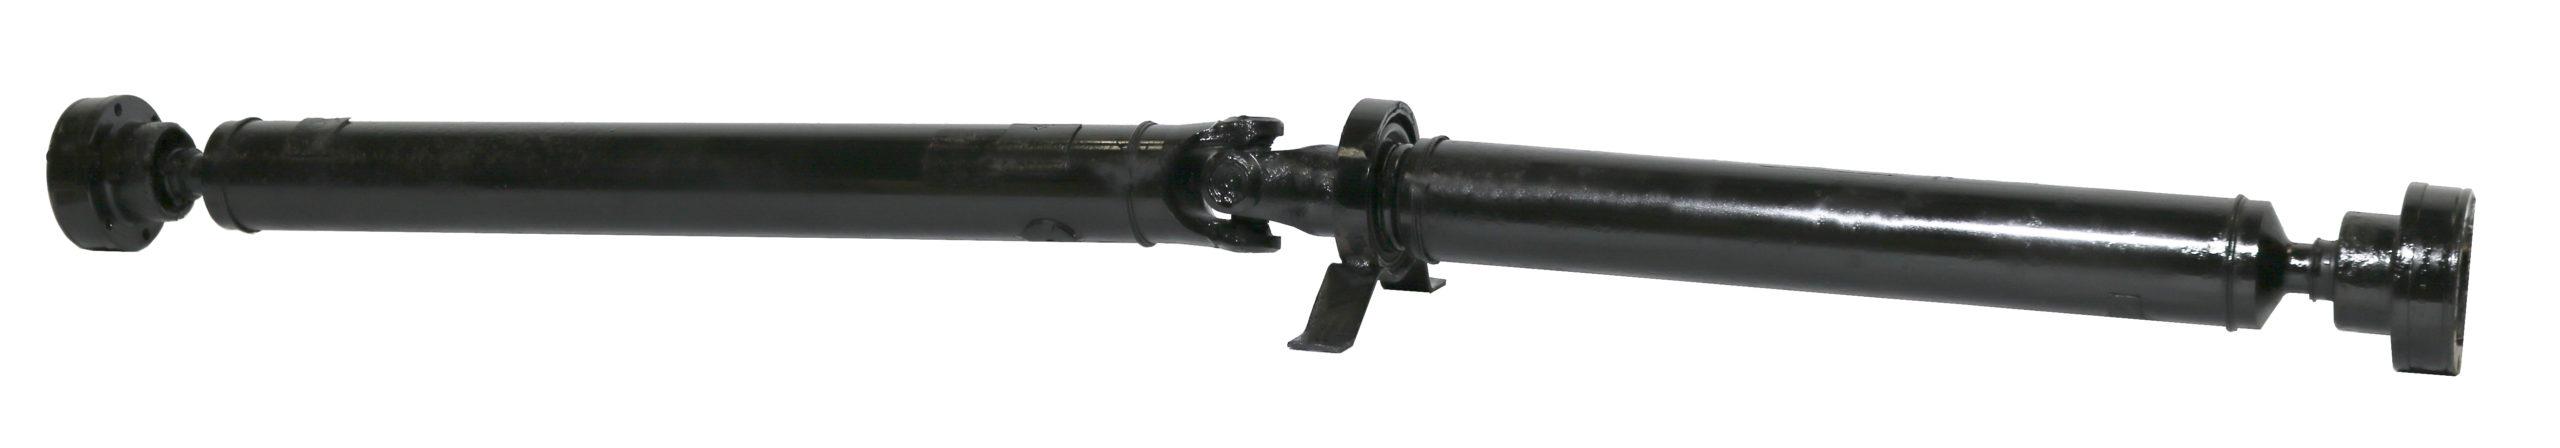 1992-1994 AUDI 100 MT REAR DRIVESHAFT